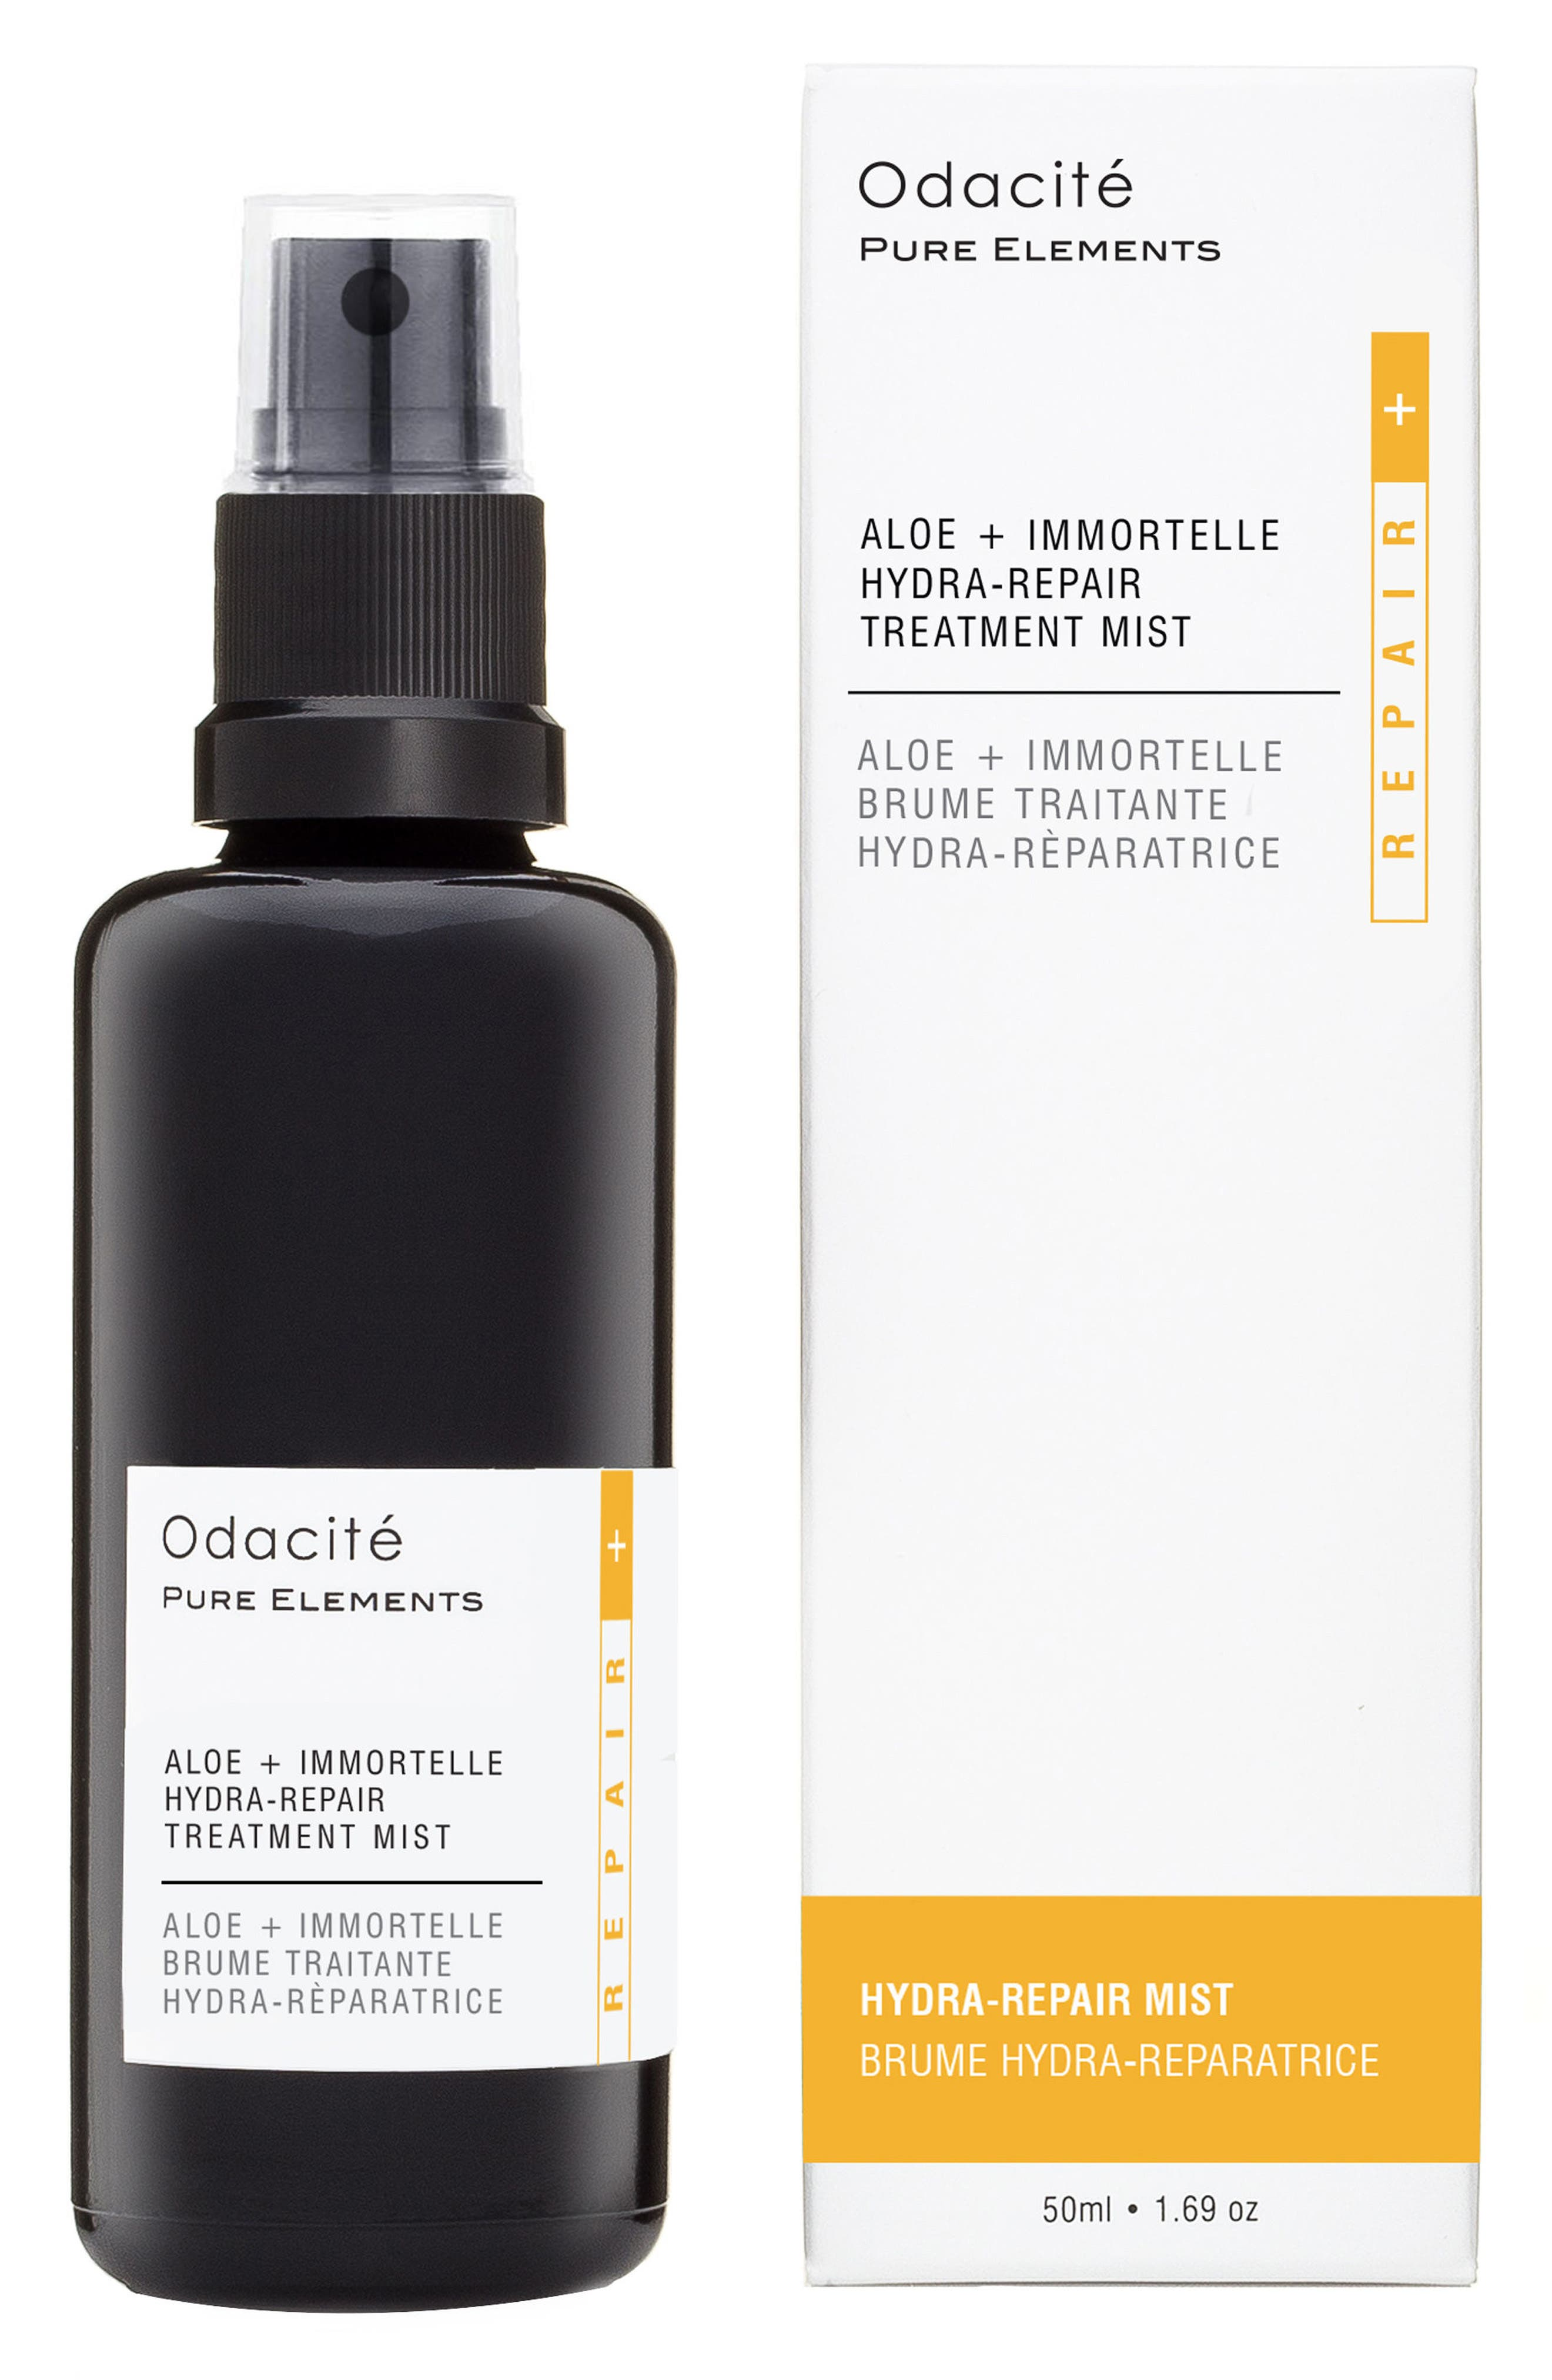 Odacité Aloe + Immortelle Hydra Repair Treatment Mist